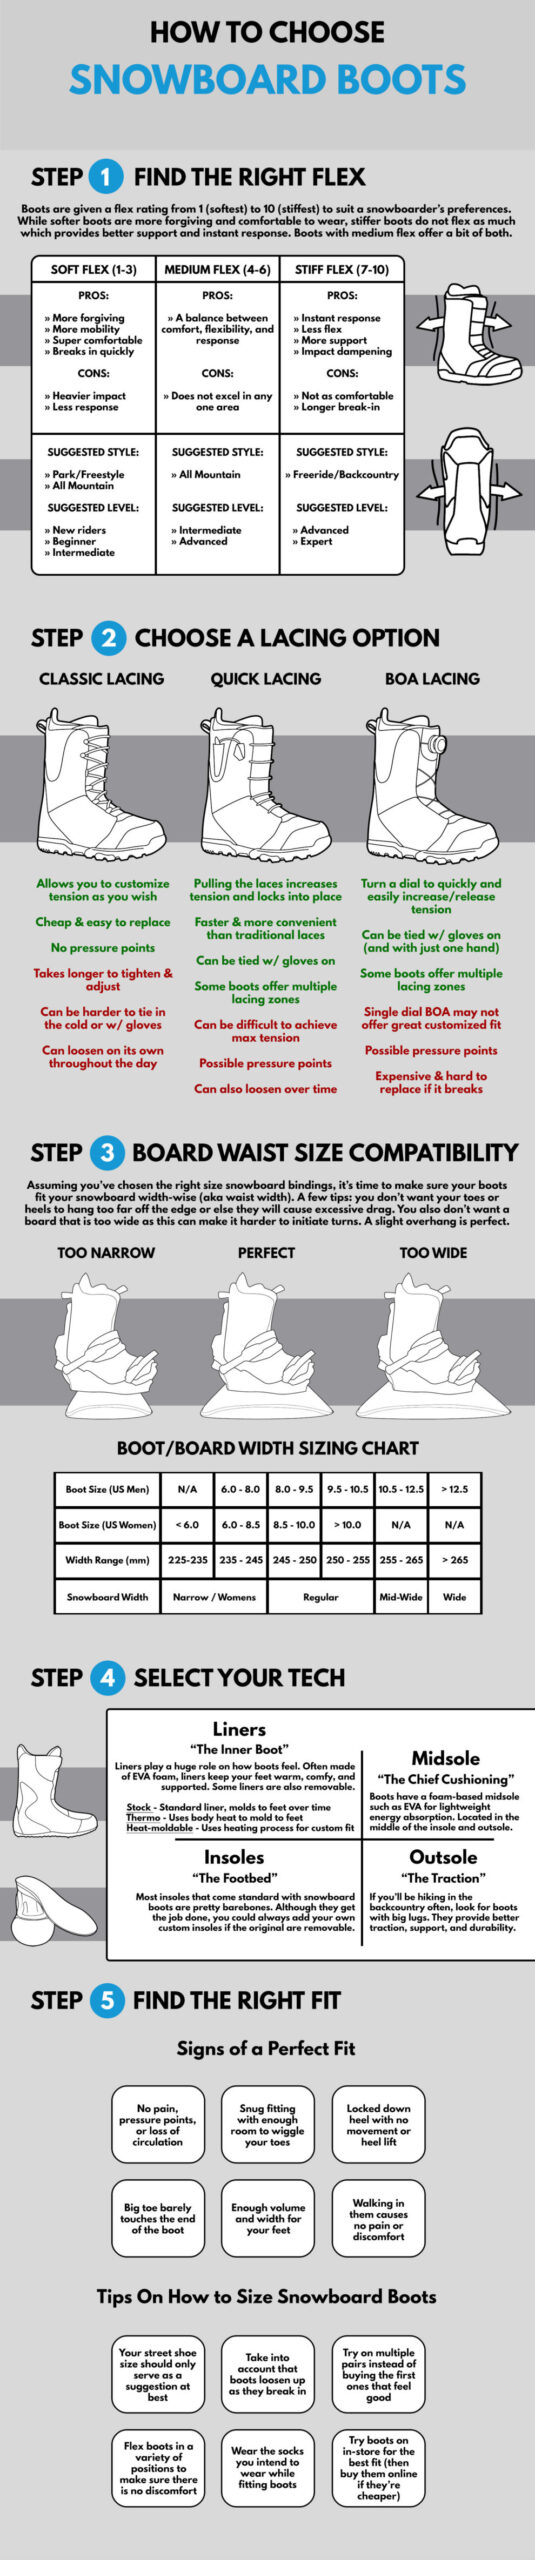 How to Choose Snowboard Boots Infographic abc